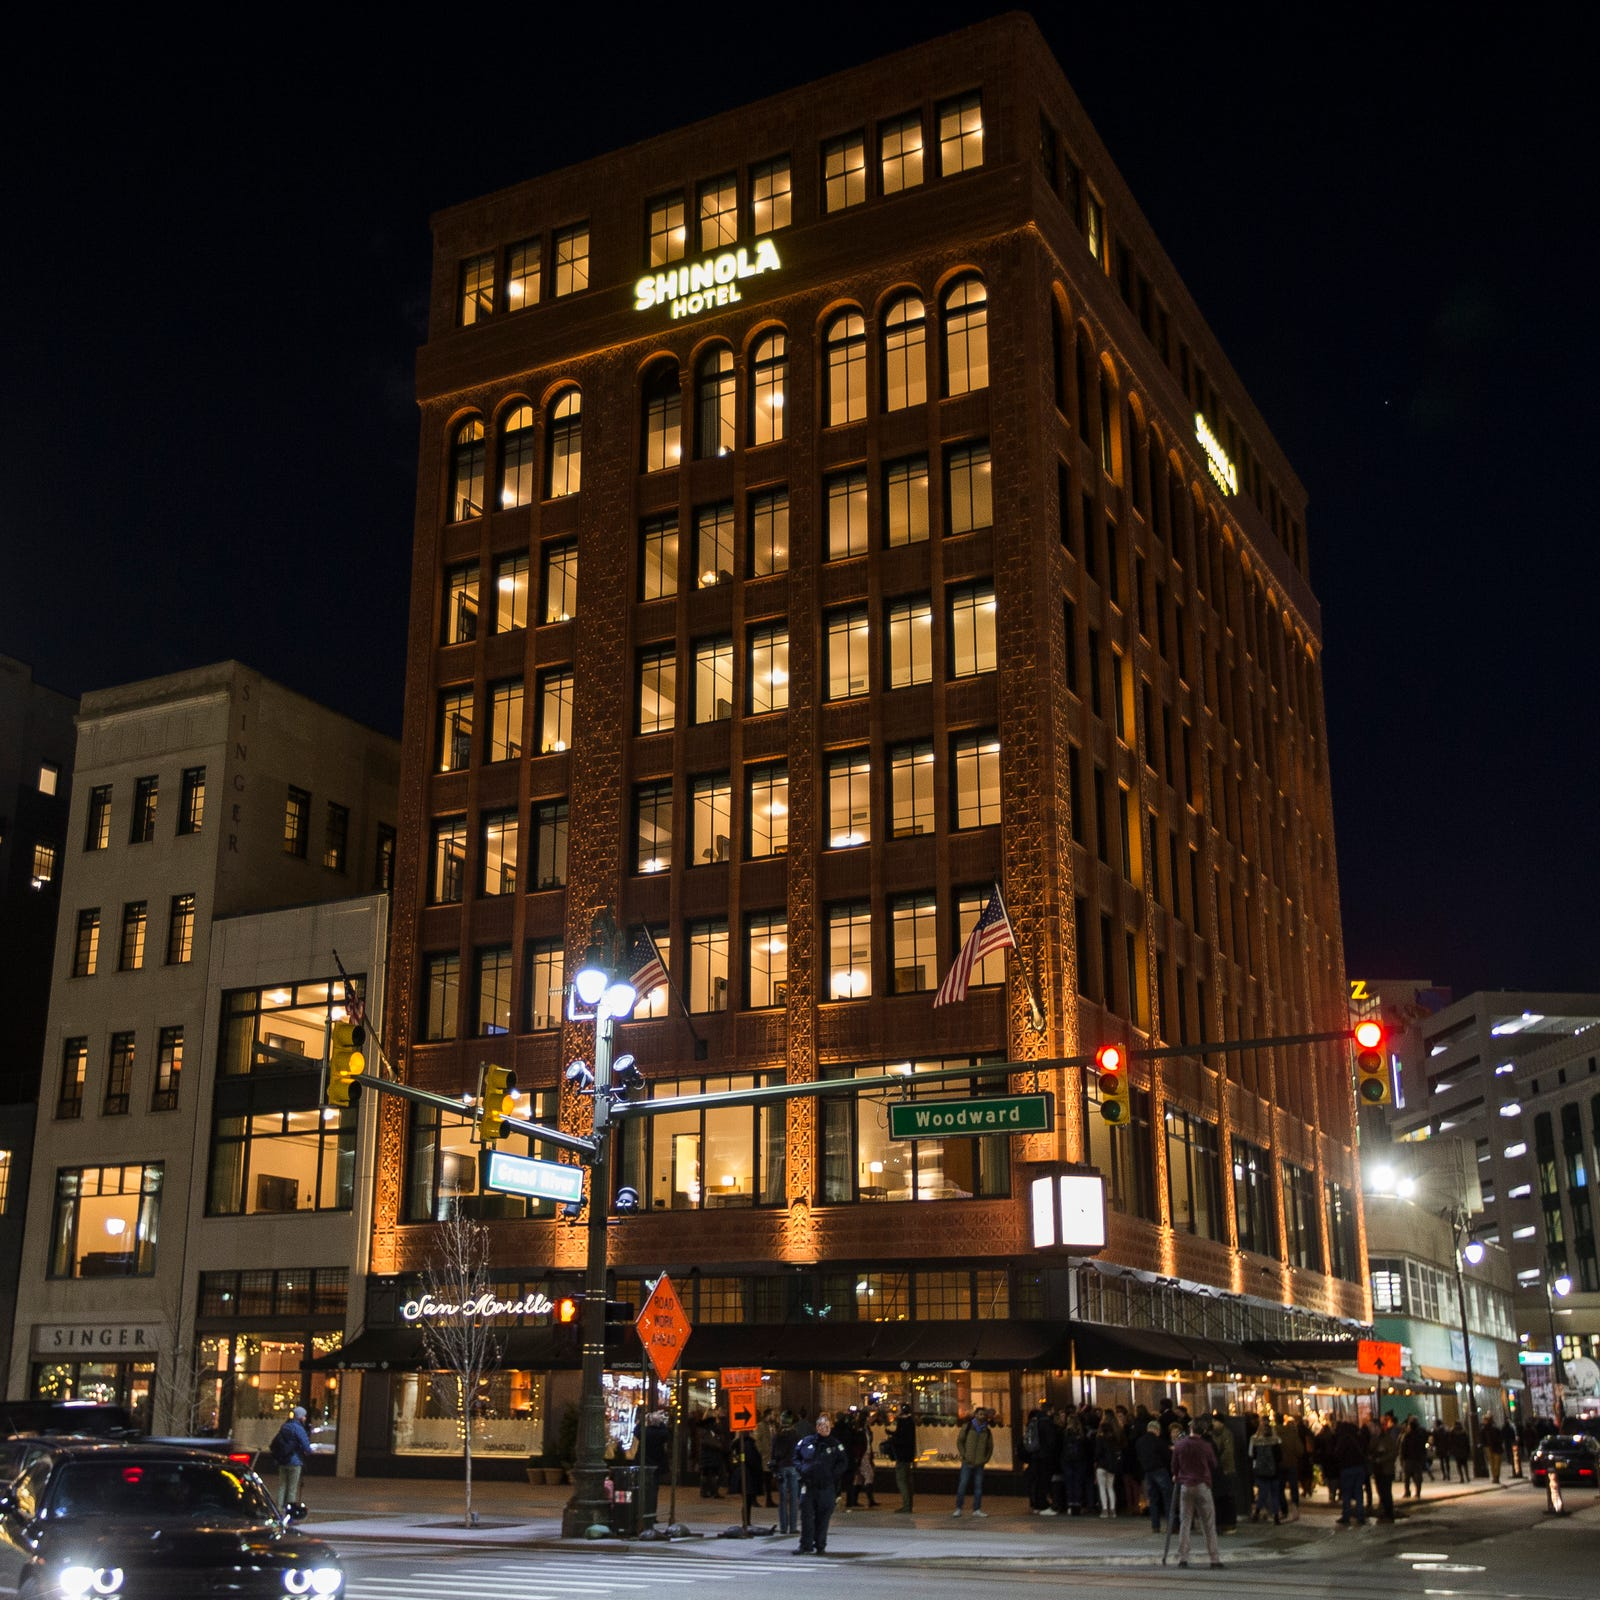 Detroit's Shinola Hotel makes Conde Nast world hot list